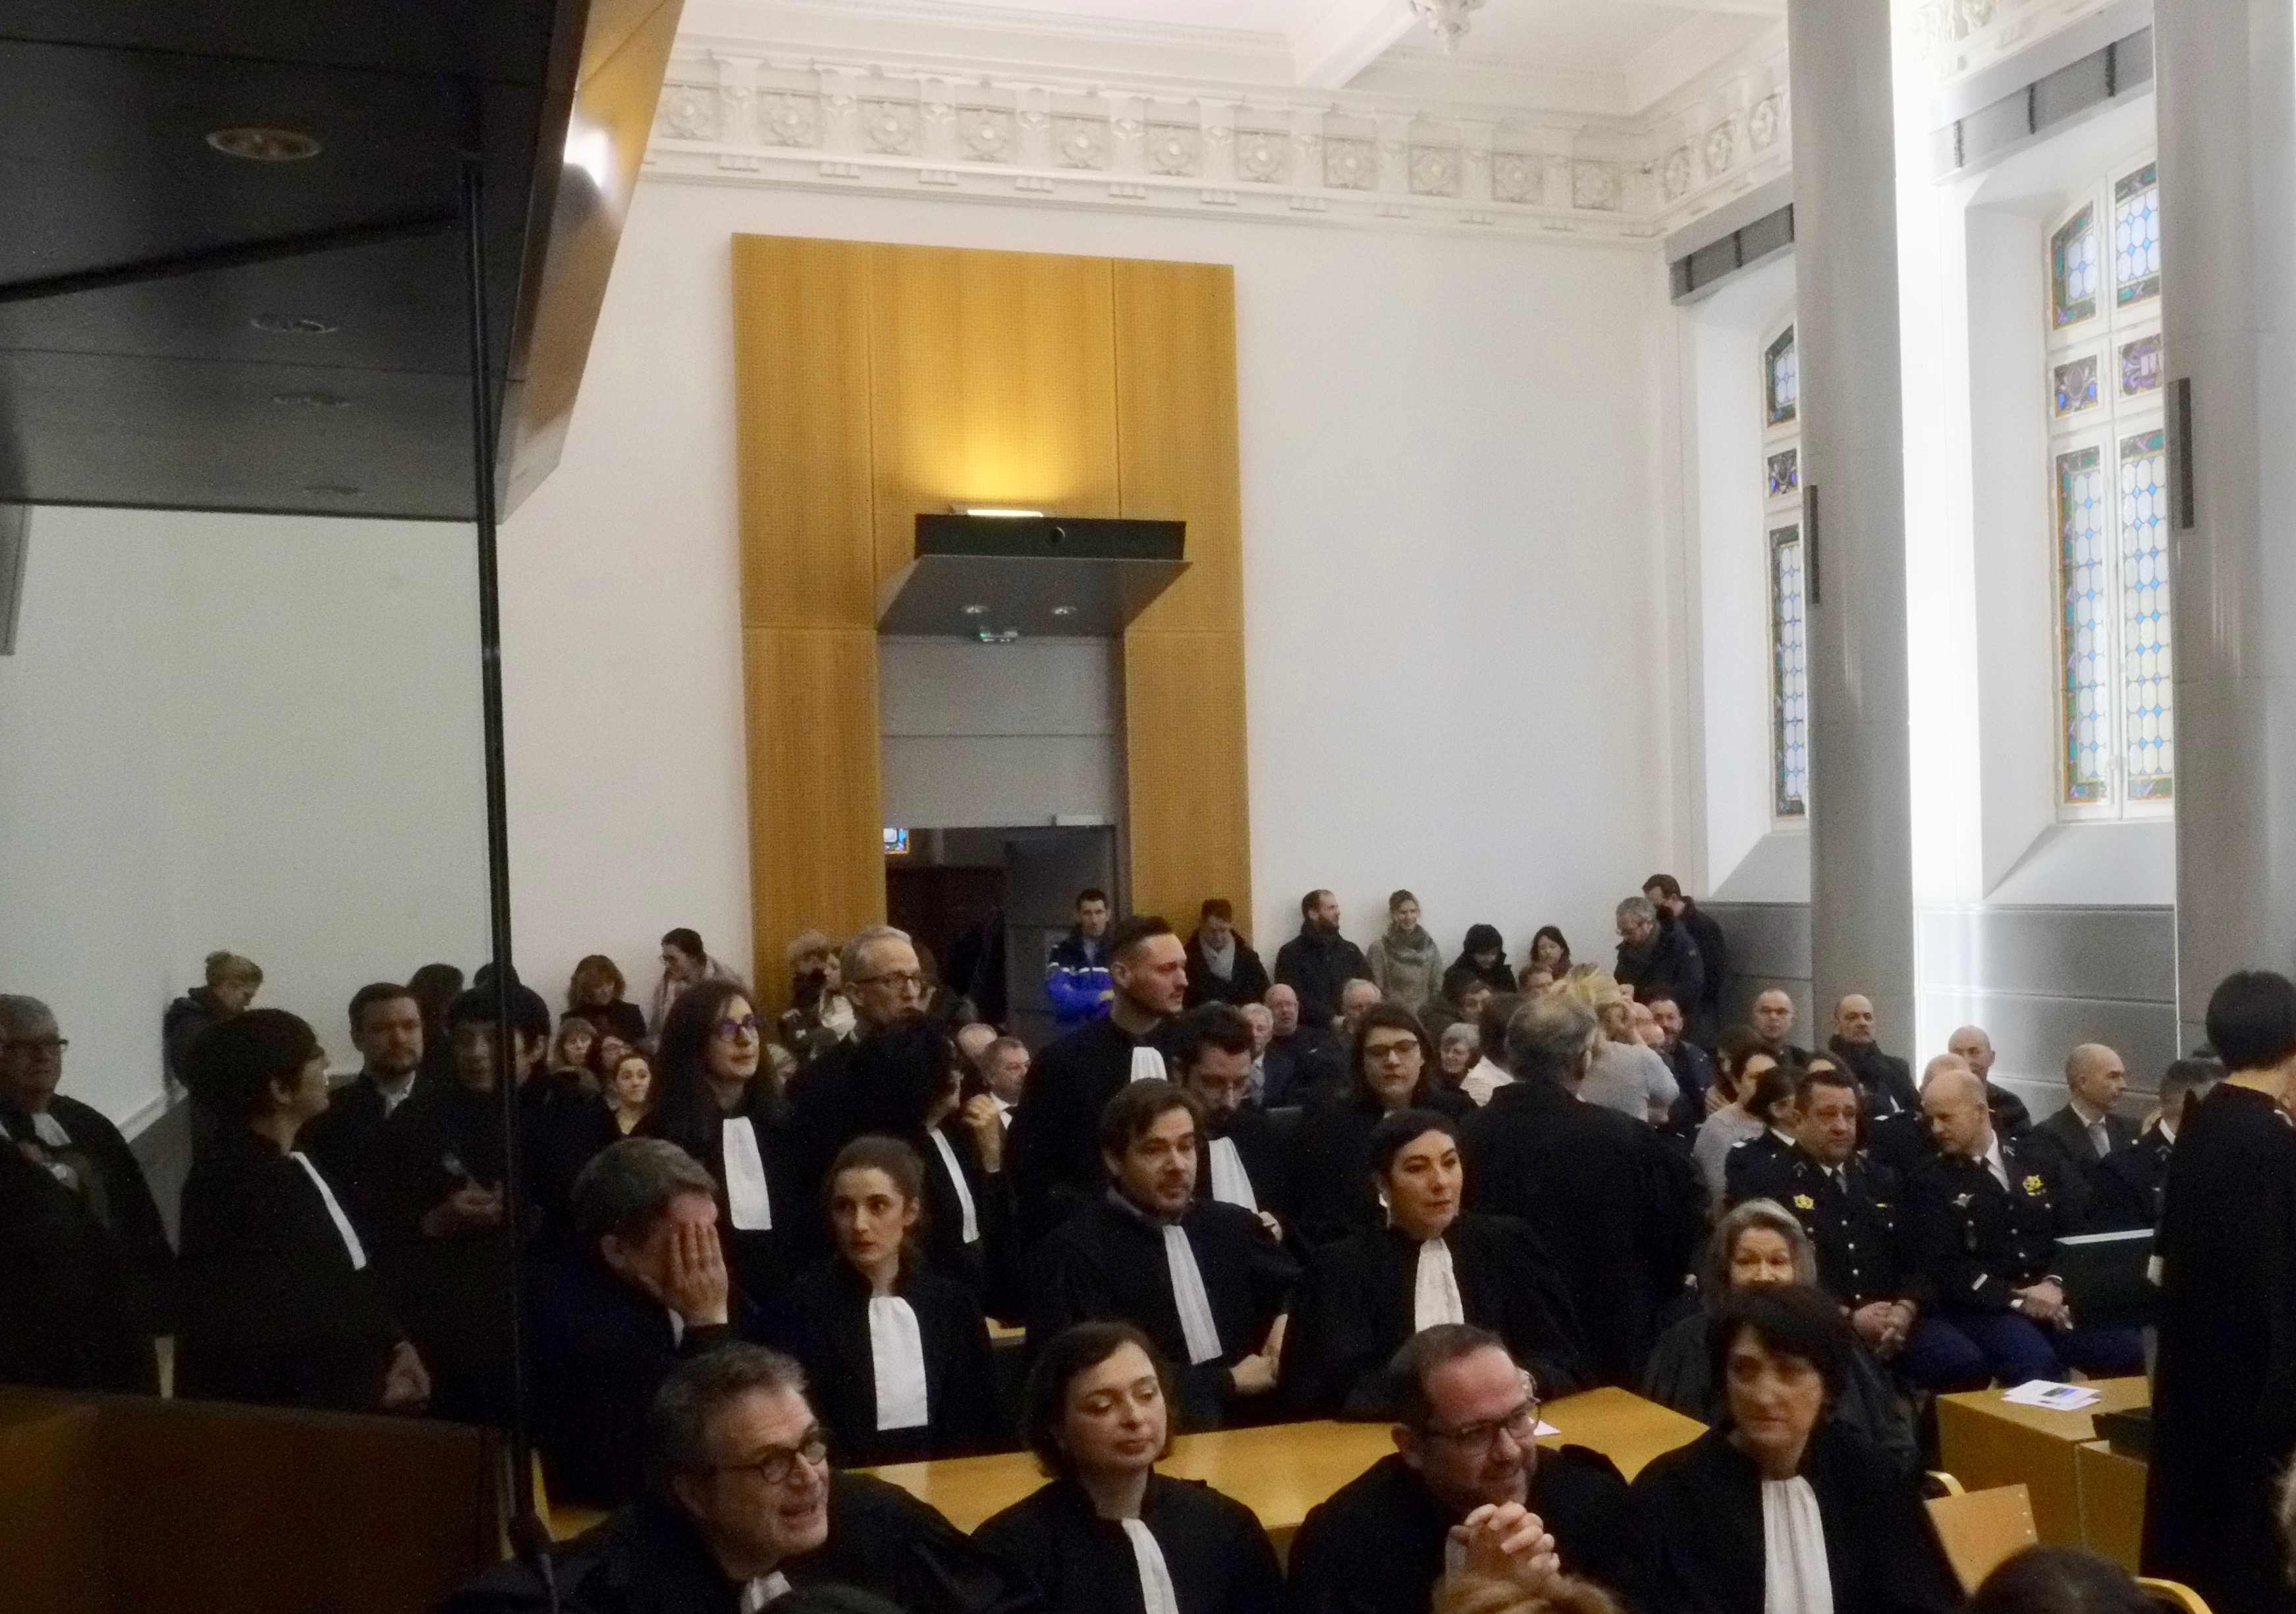 audience solennenlle tribunal